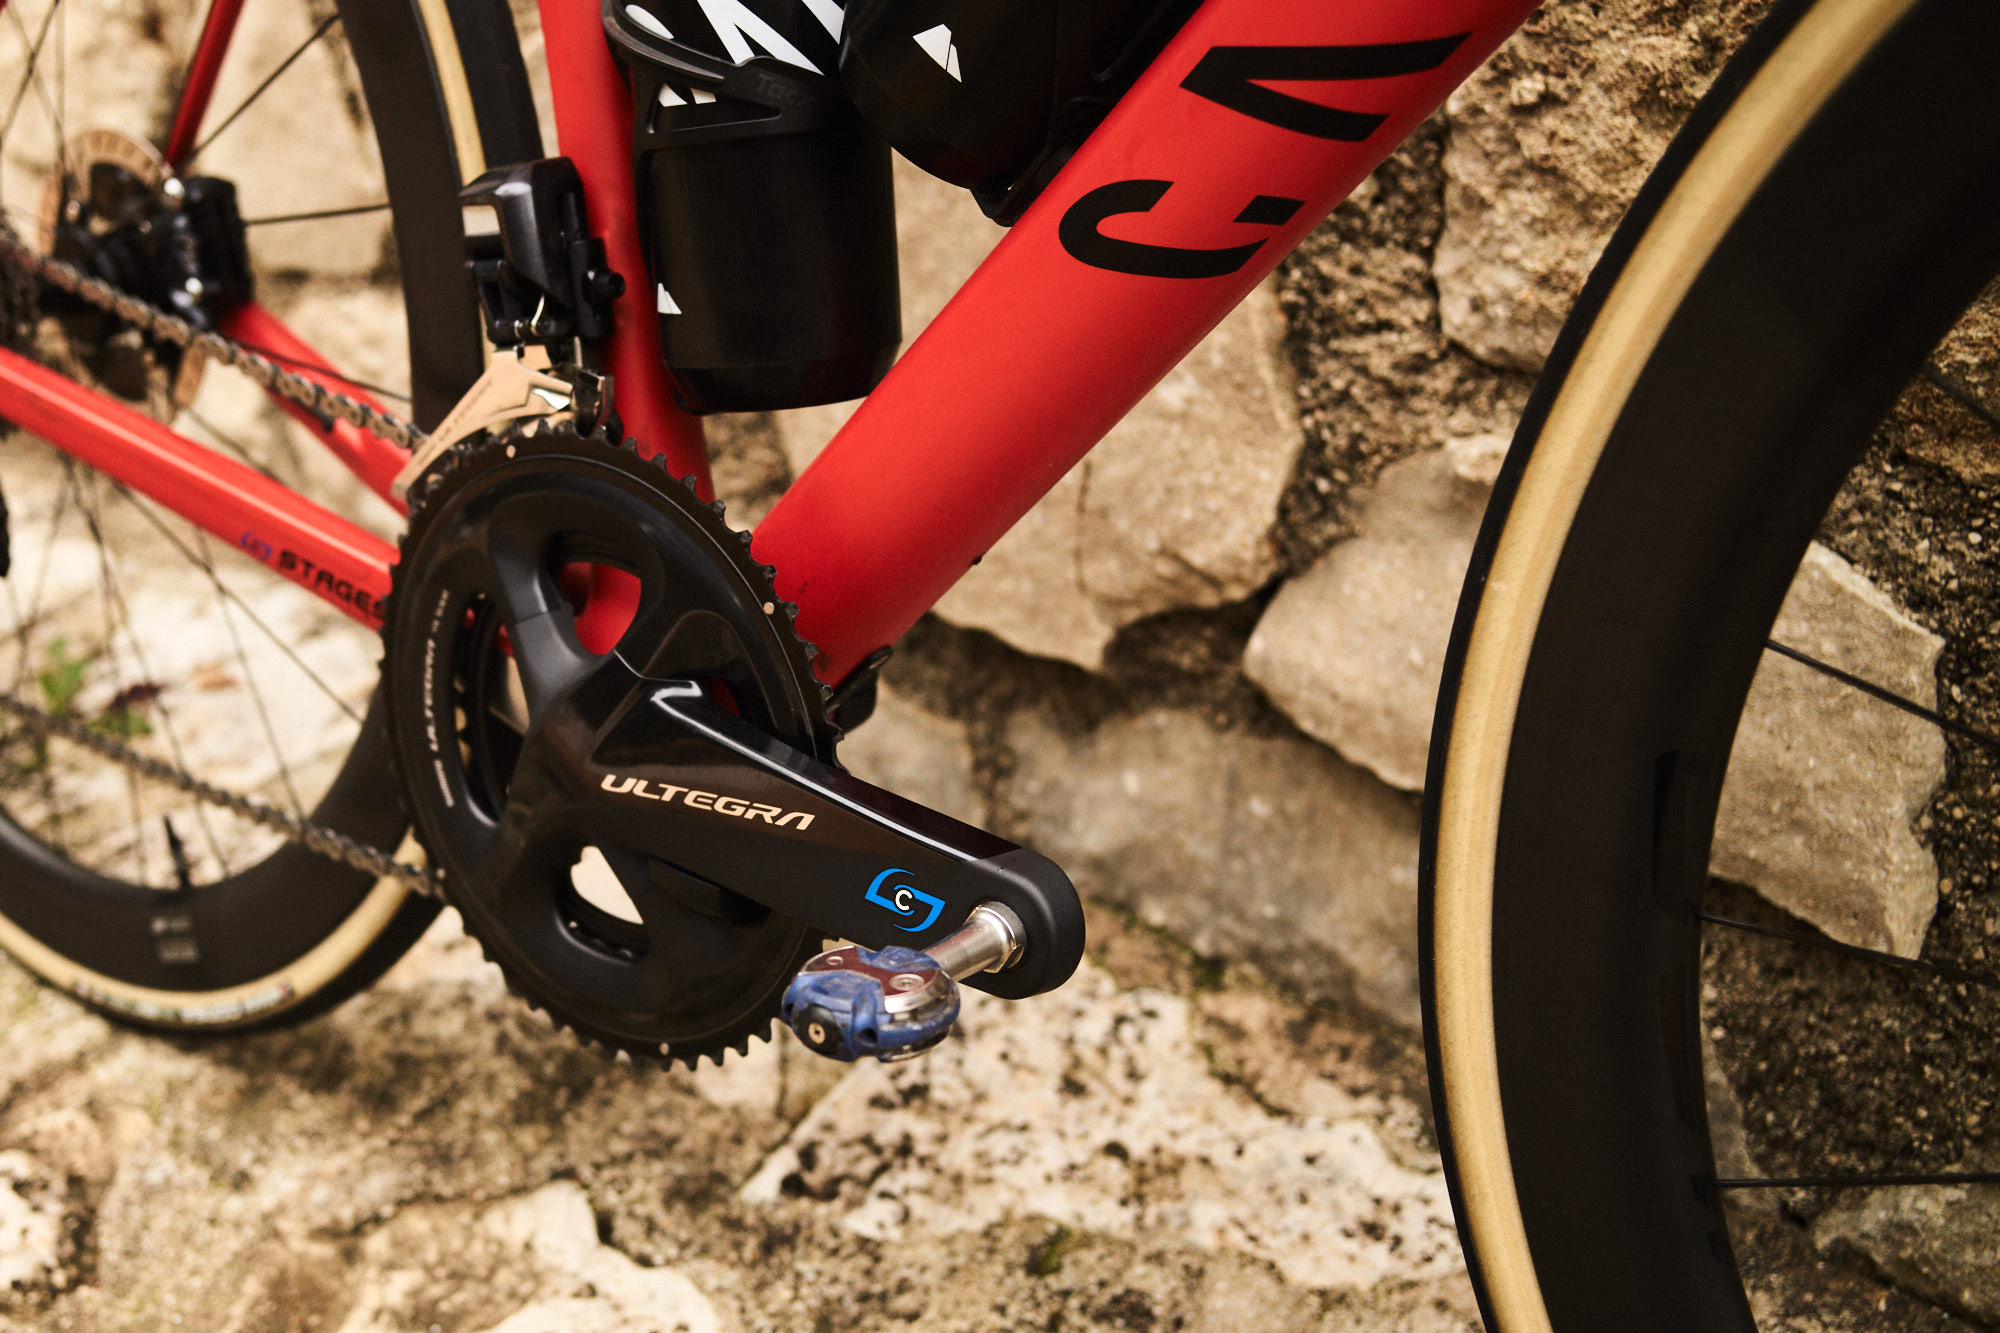 The Stages Power LR Shimano Ultagra R8000.